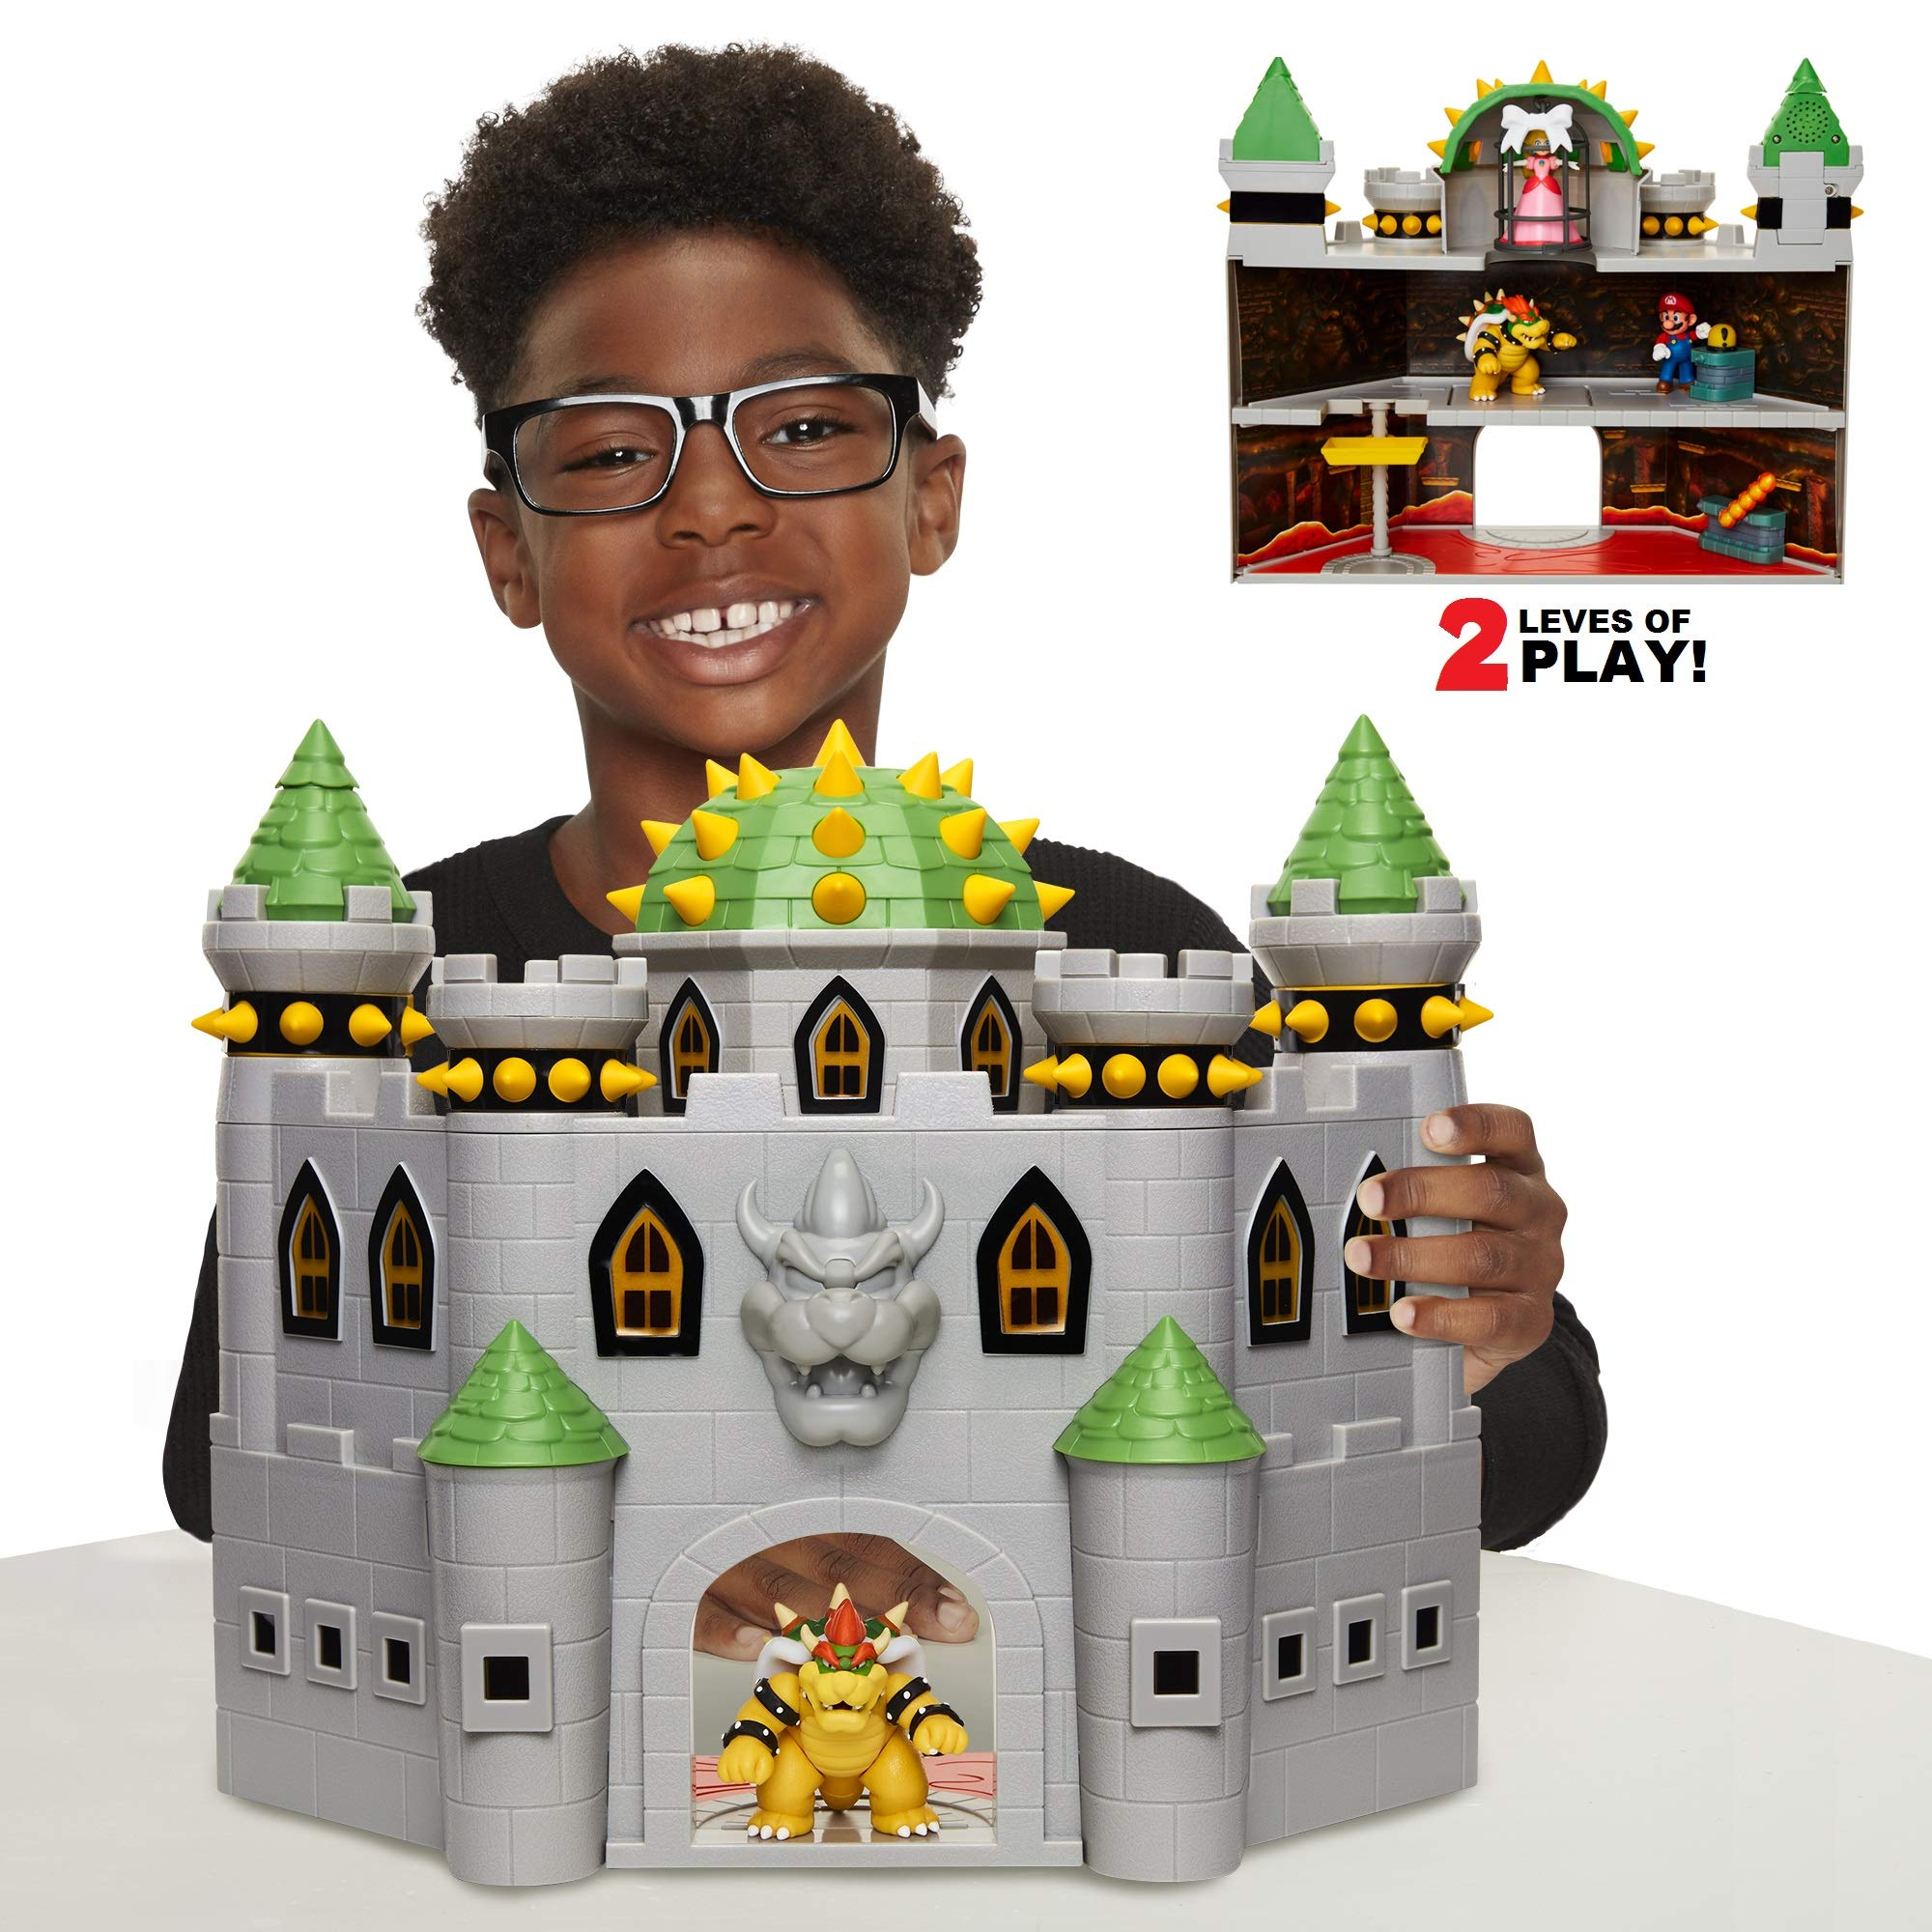 Nintendo Bowser's Castle Super Mario Deluxe Bowser's Castle Playset with 2.5'' Bowser Action Figure, Includes Interactivepiece & Authentic in-Game Sounds!